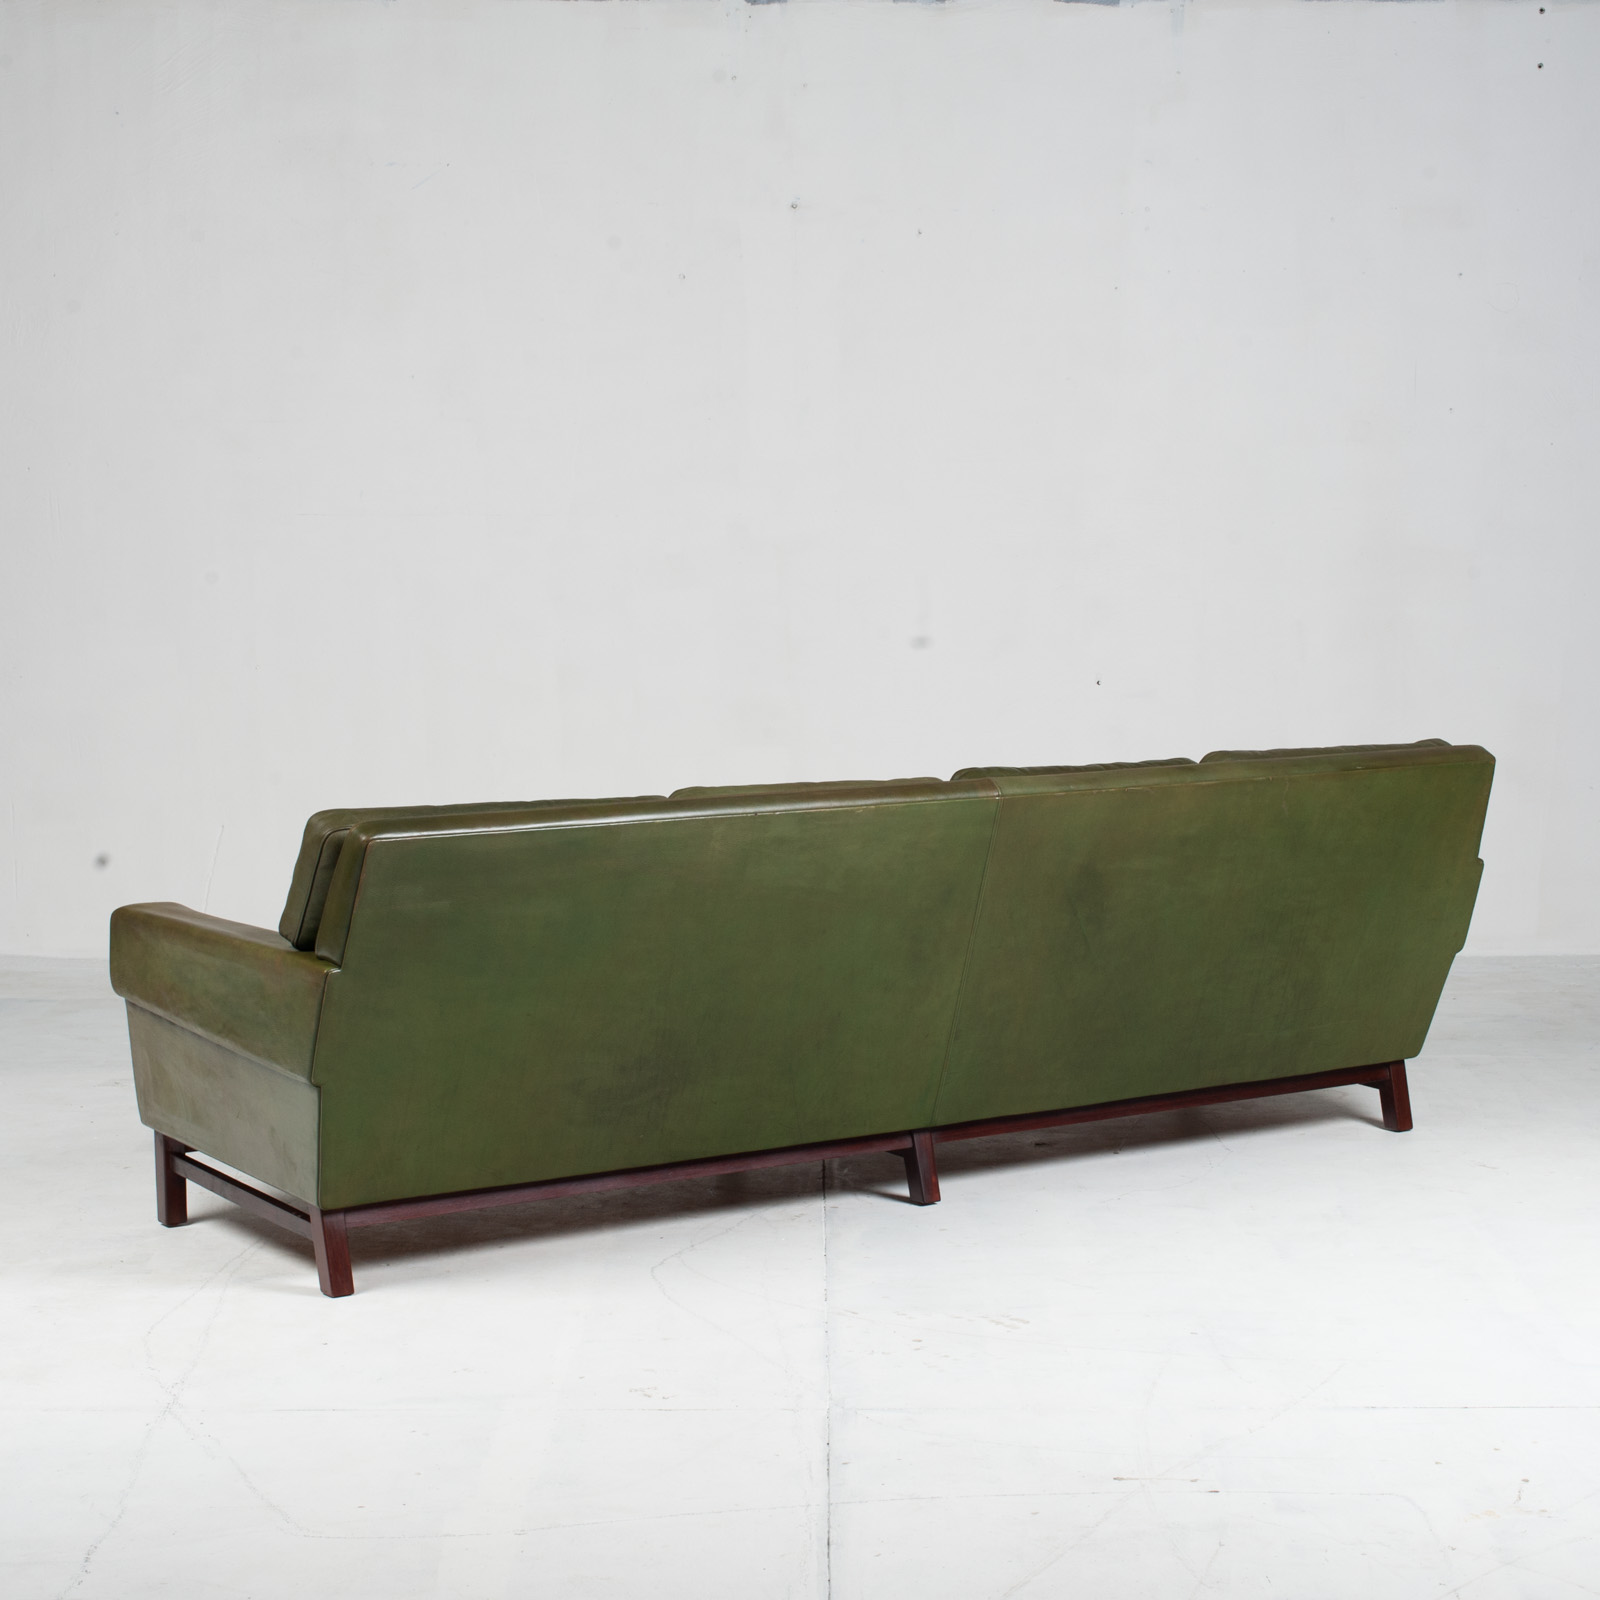 4 Seat Sofa In Olive Leather 1960s Denmark 012